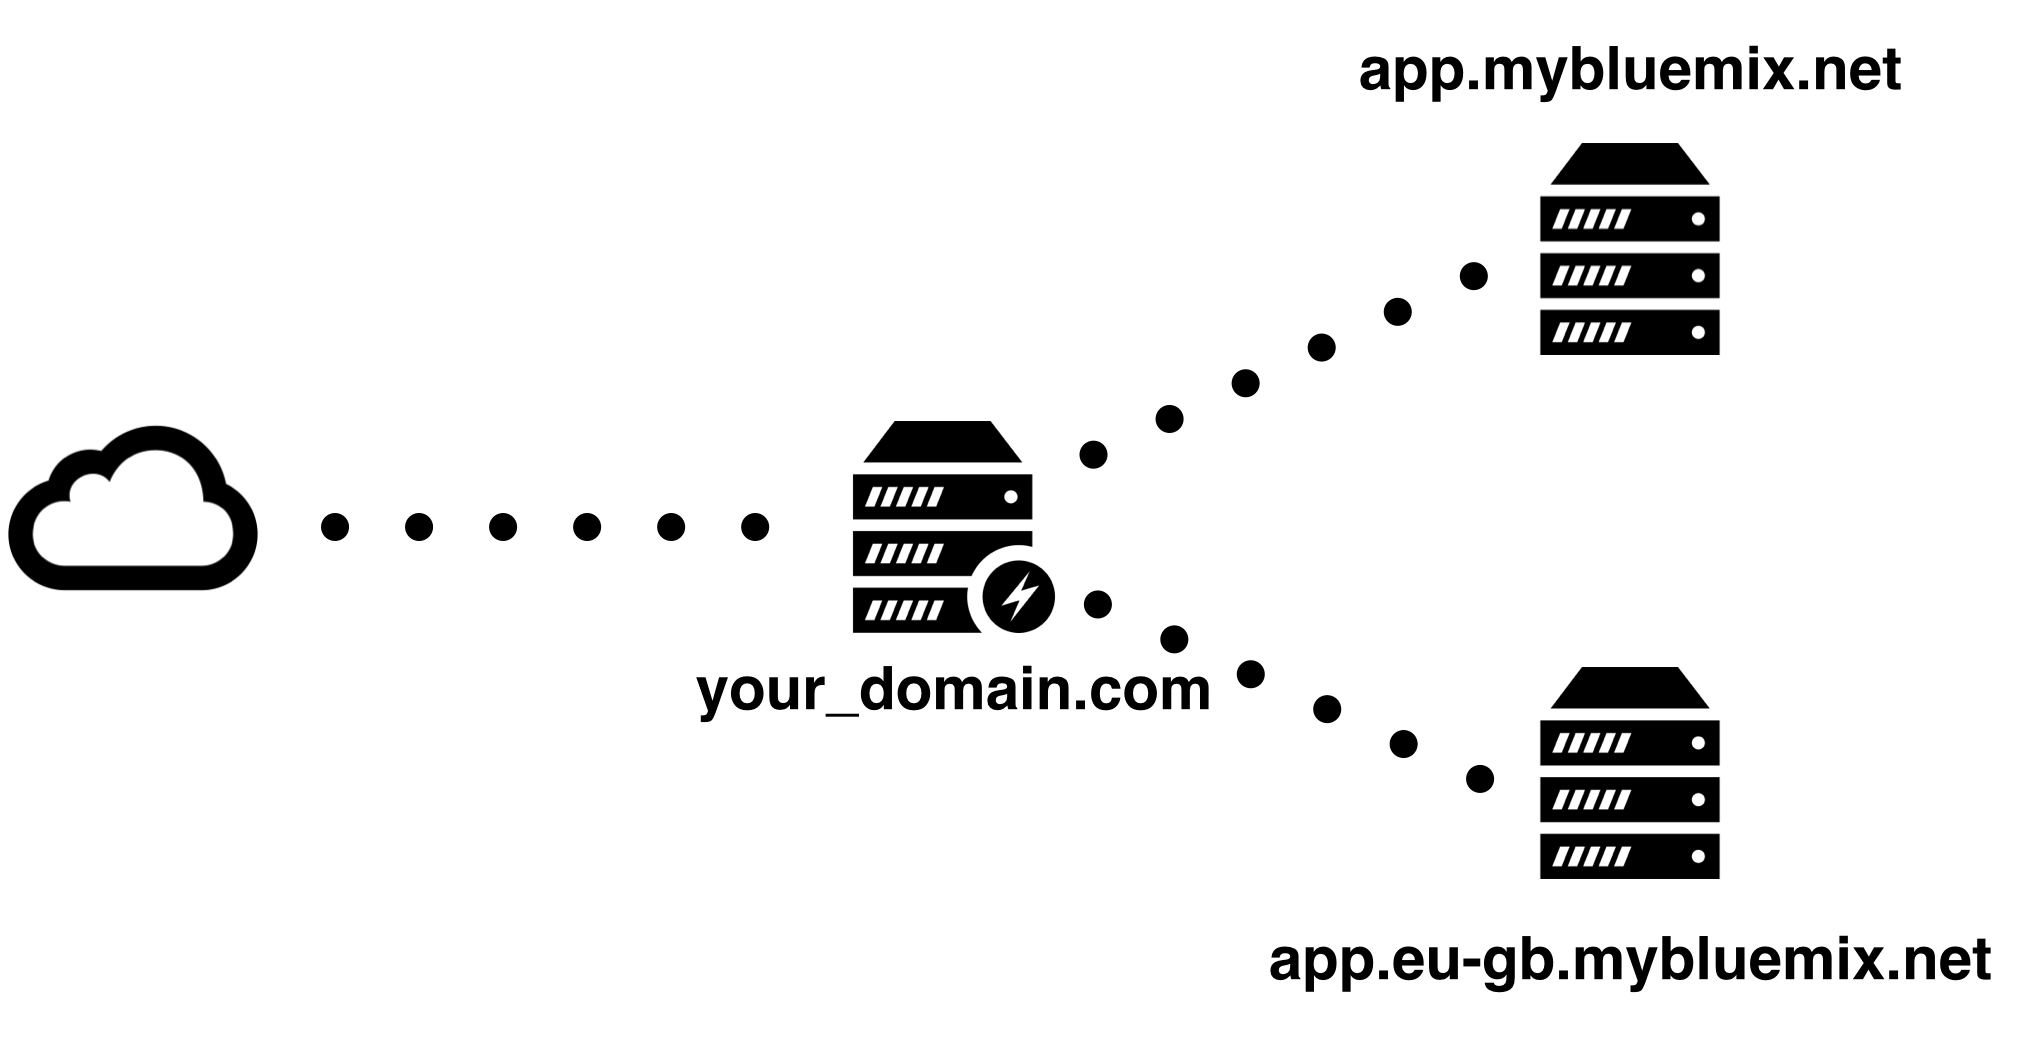 Location-Based Cloud Foundry Applications using Nginx and